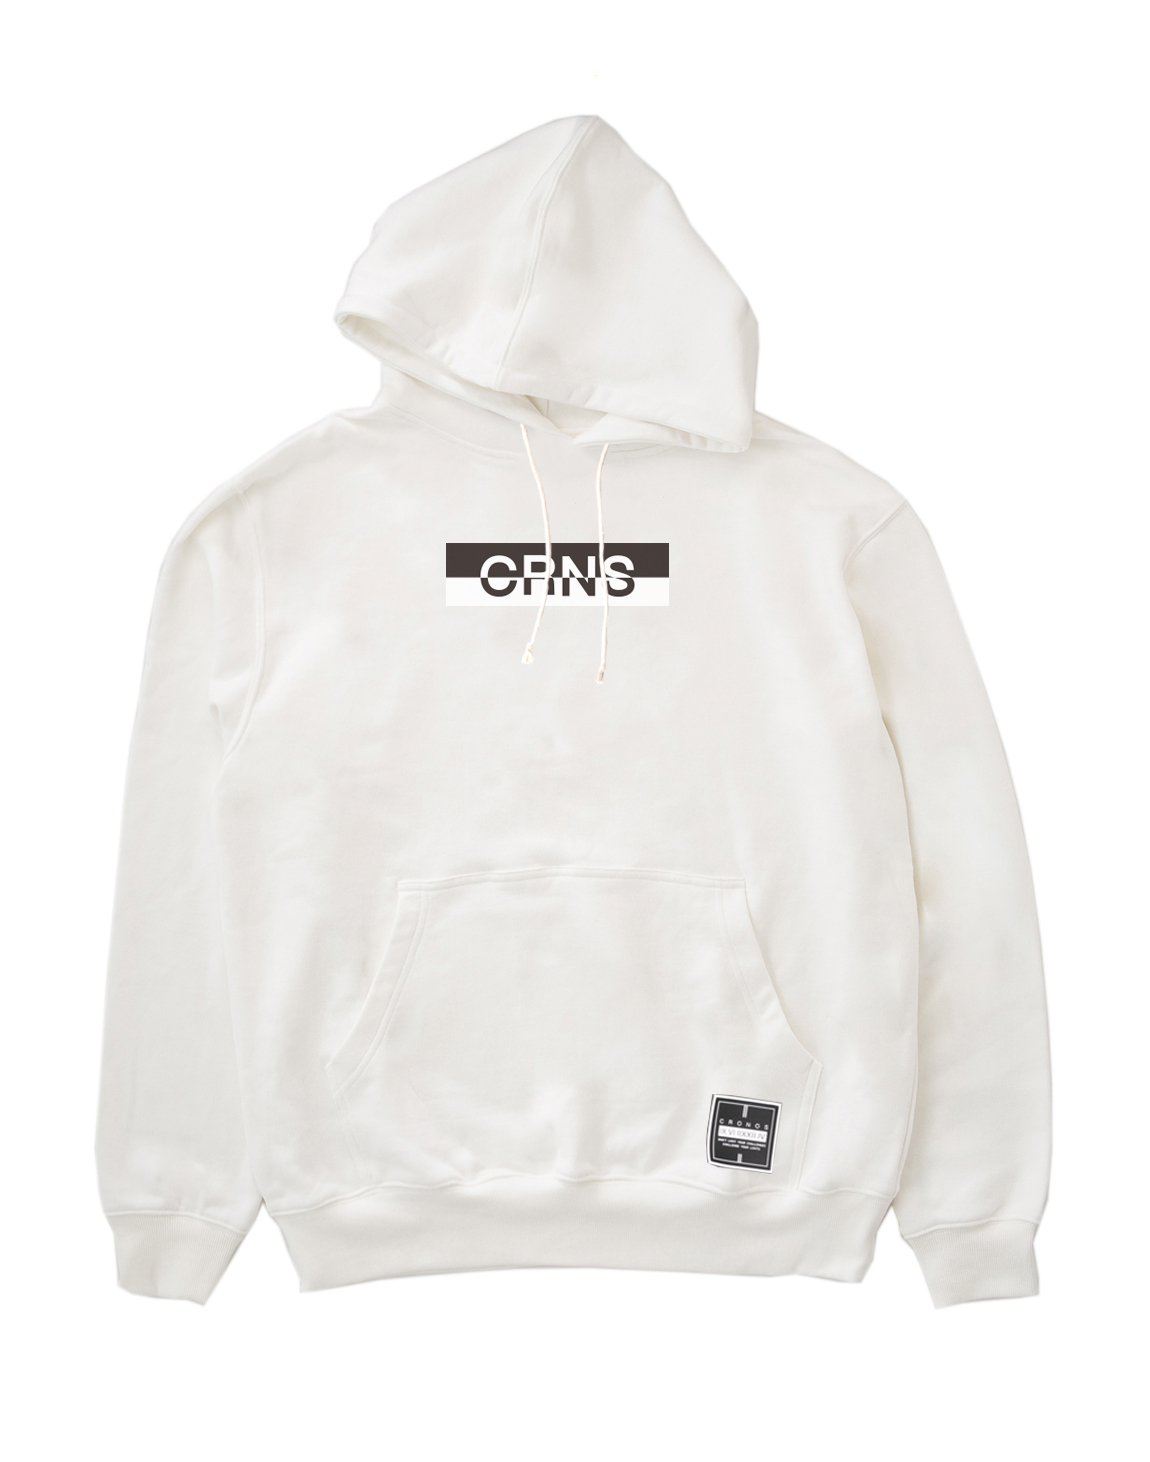 <img class='new_mark_img1' src='https://img.shop-pro.jp/img/new/icons1.gif' style='border:none;display:inline;margin:0px;padding:0px;width:auto;' />CRNS BOX LOGO PULL OVER PARKA 【WHTE】